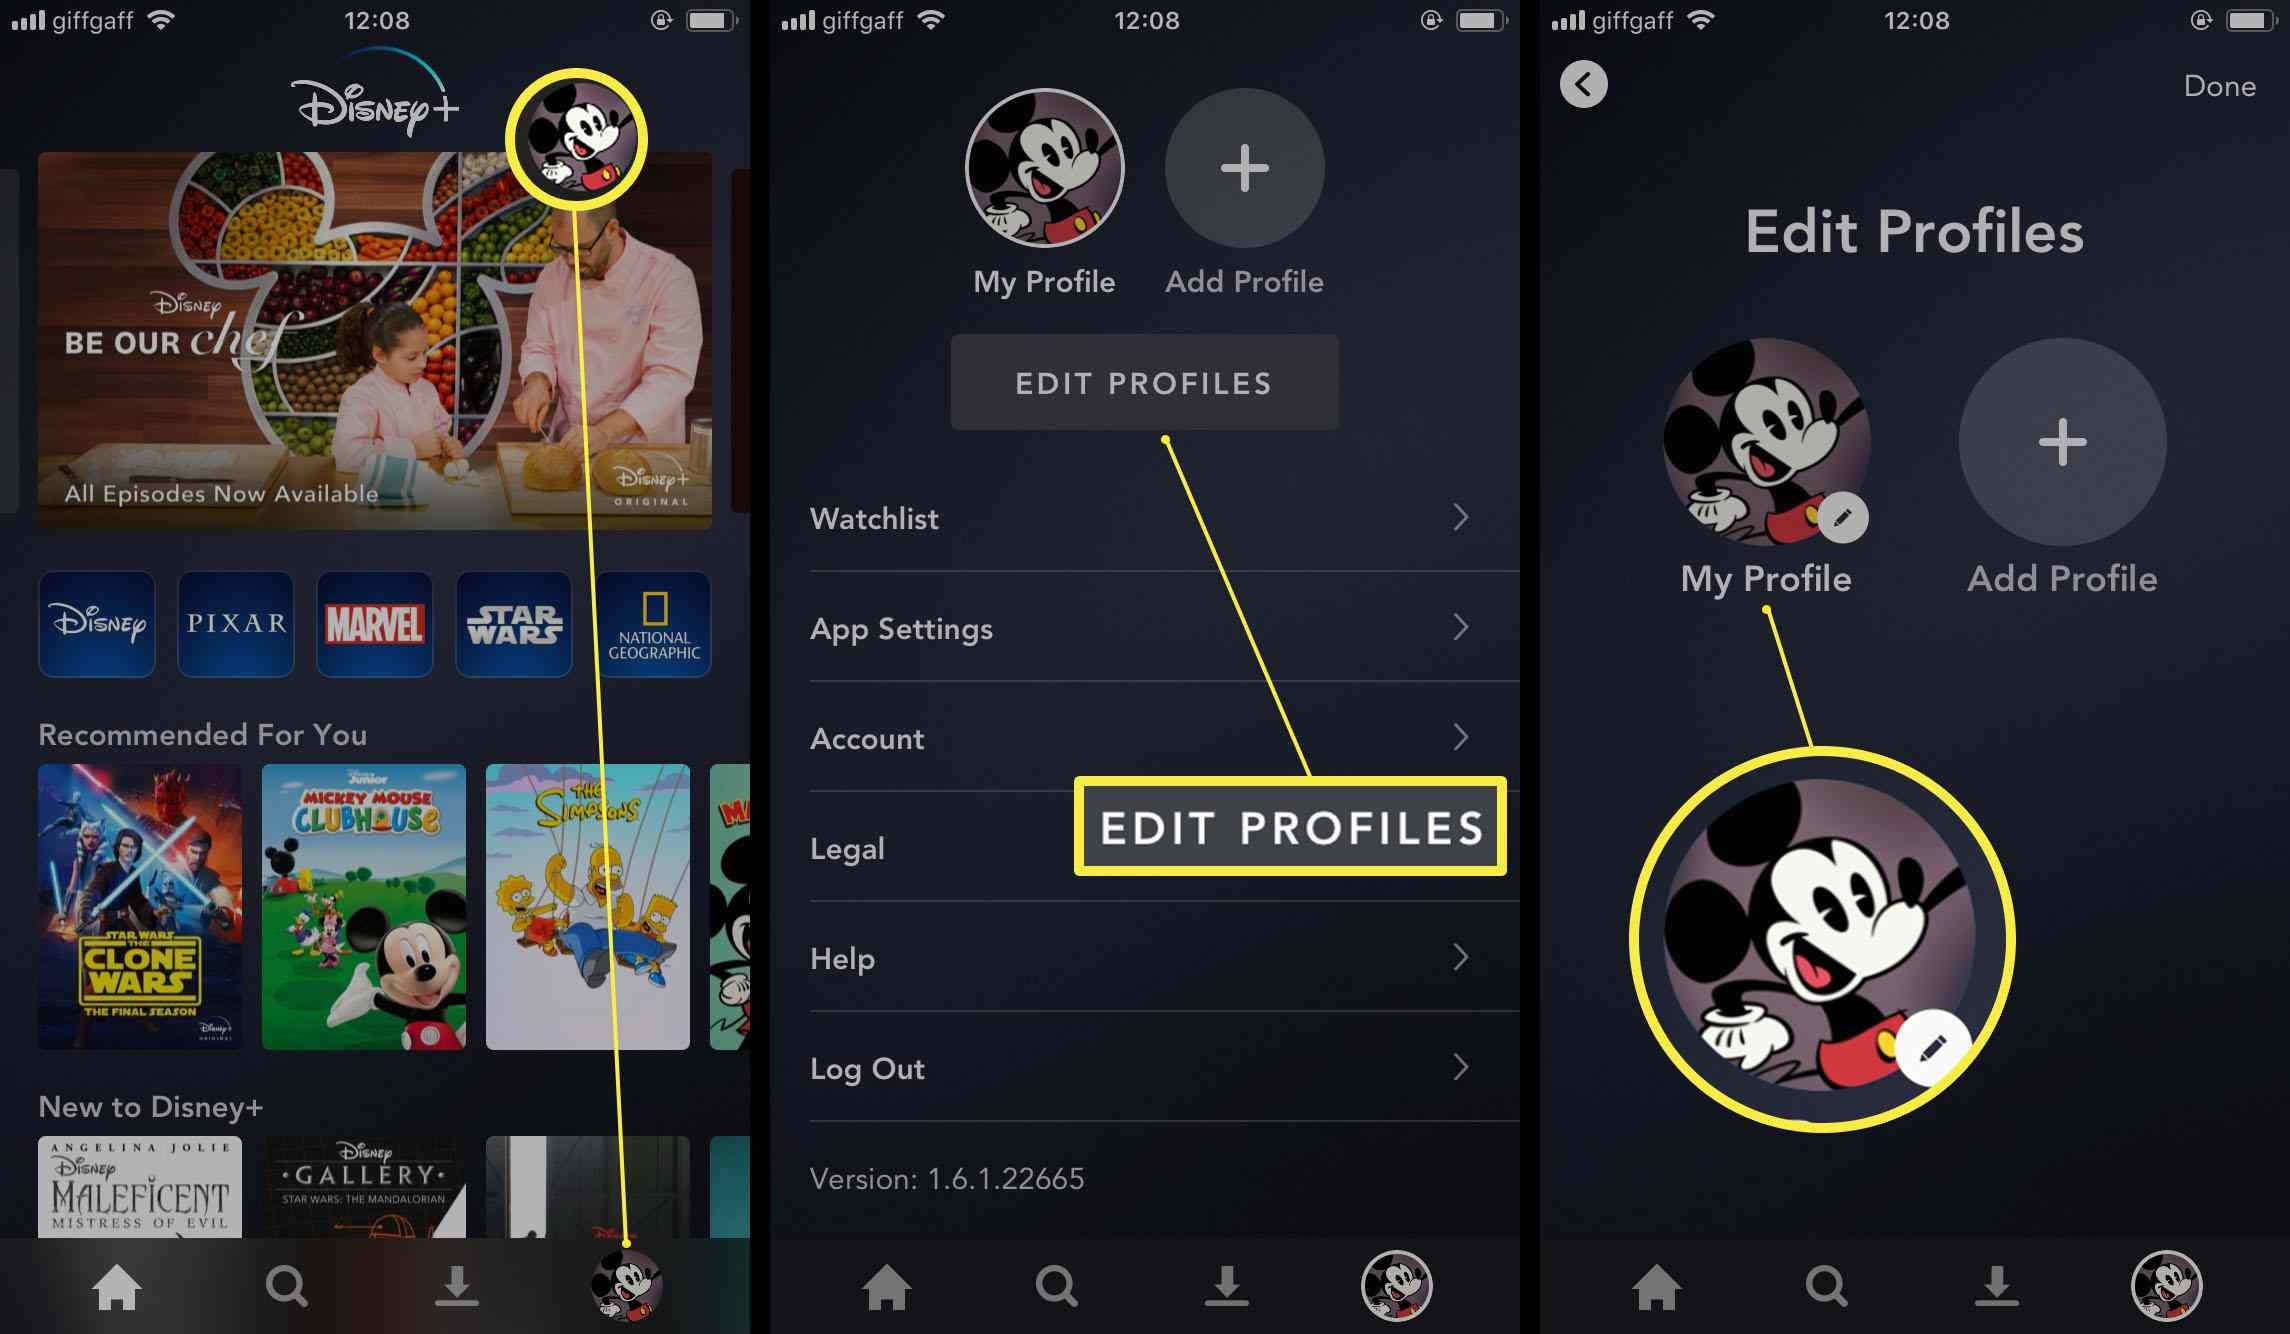 Disney+ app with the steps for editing a profile's settings highlighted